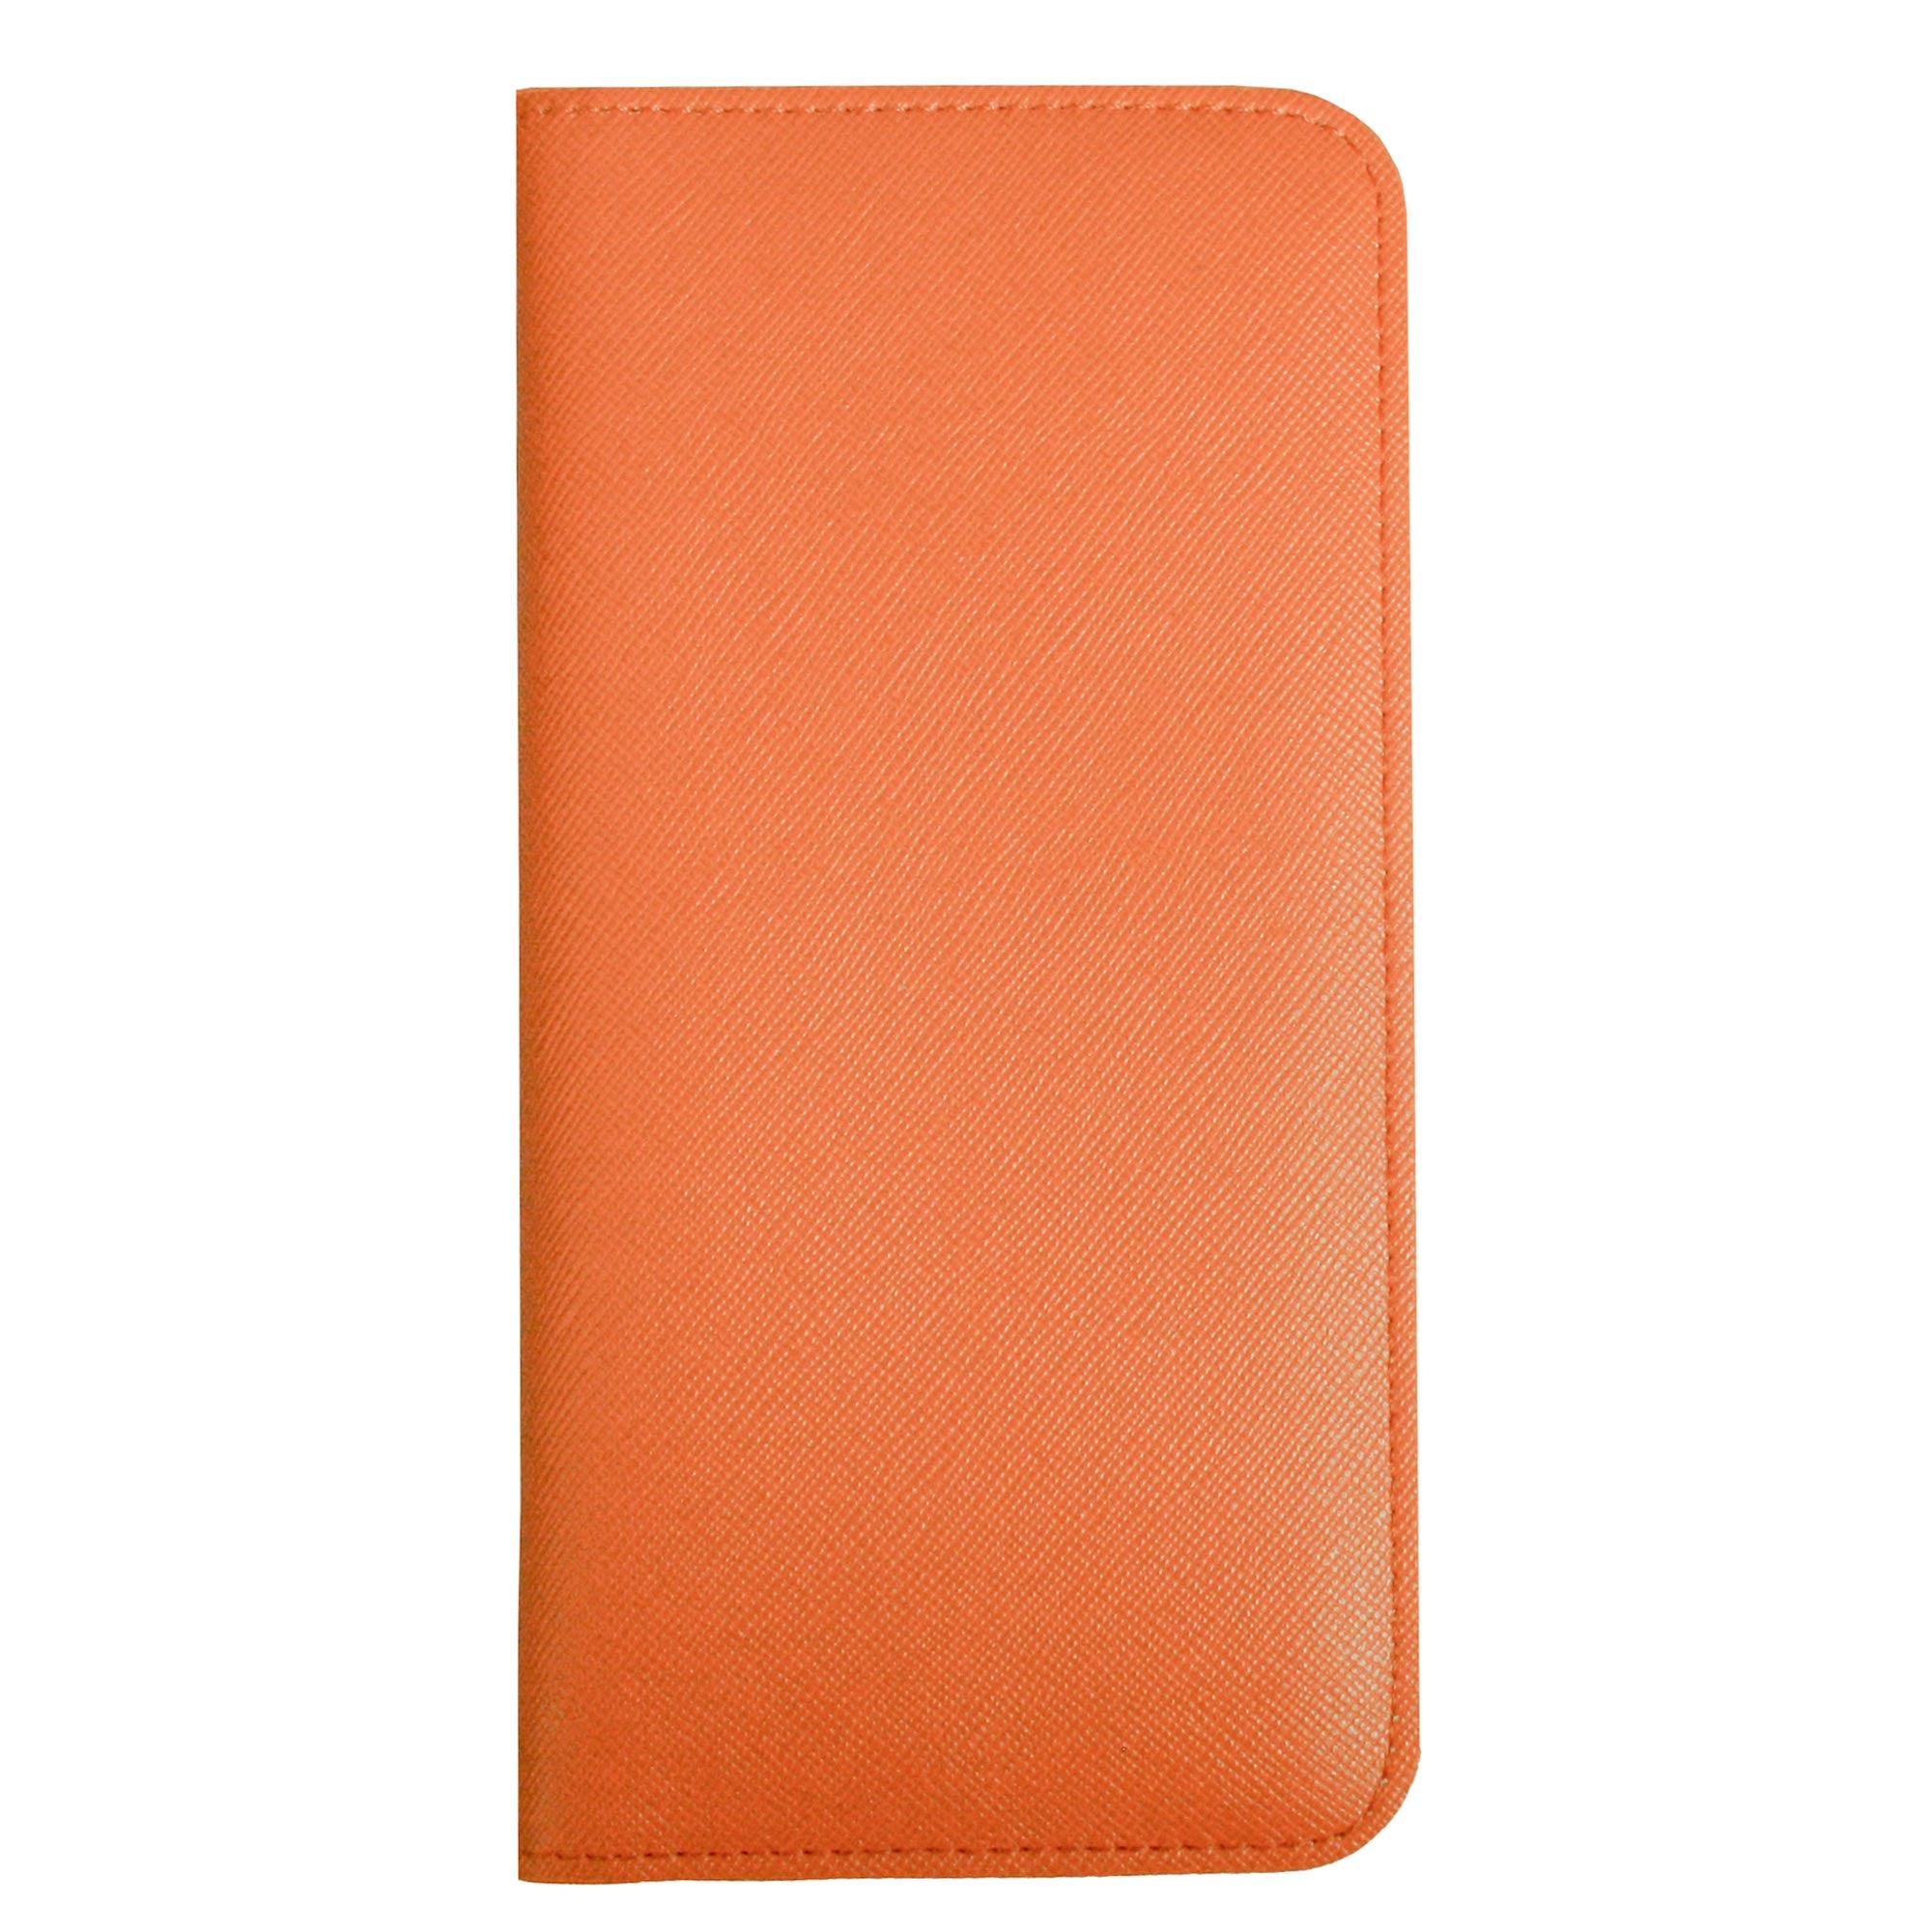 MAGNETIC PHONE WALLET - ORANGE PLAIN